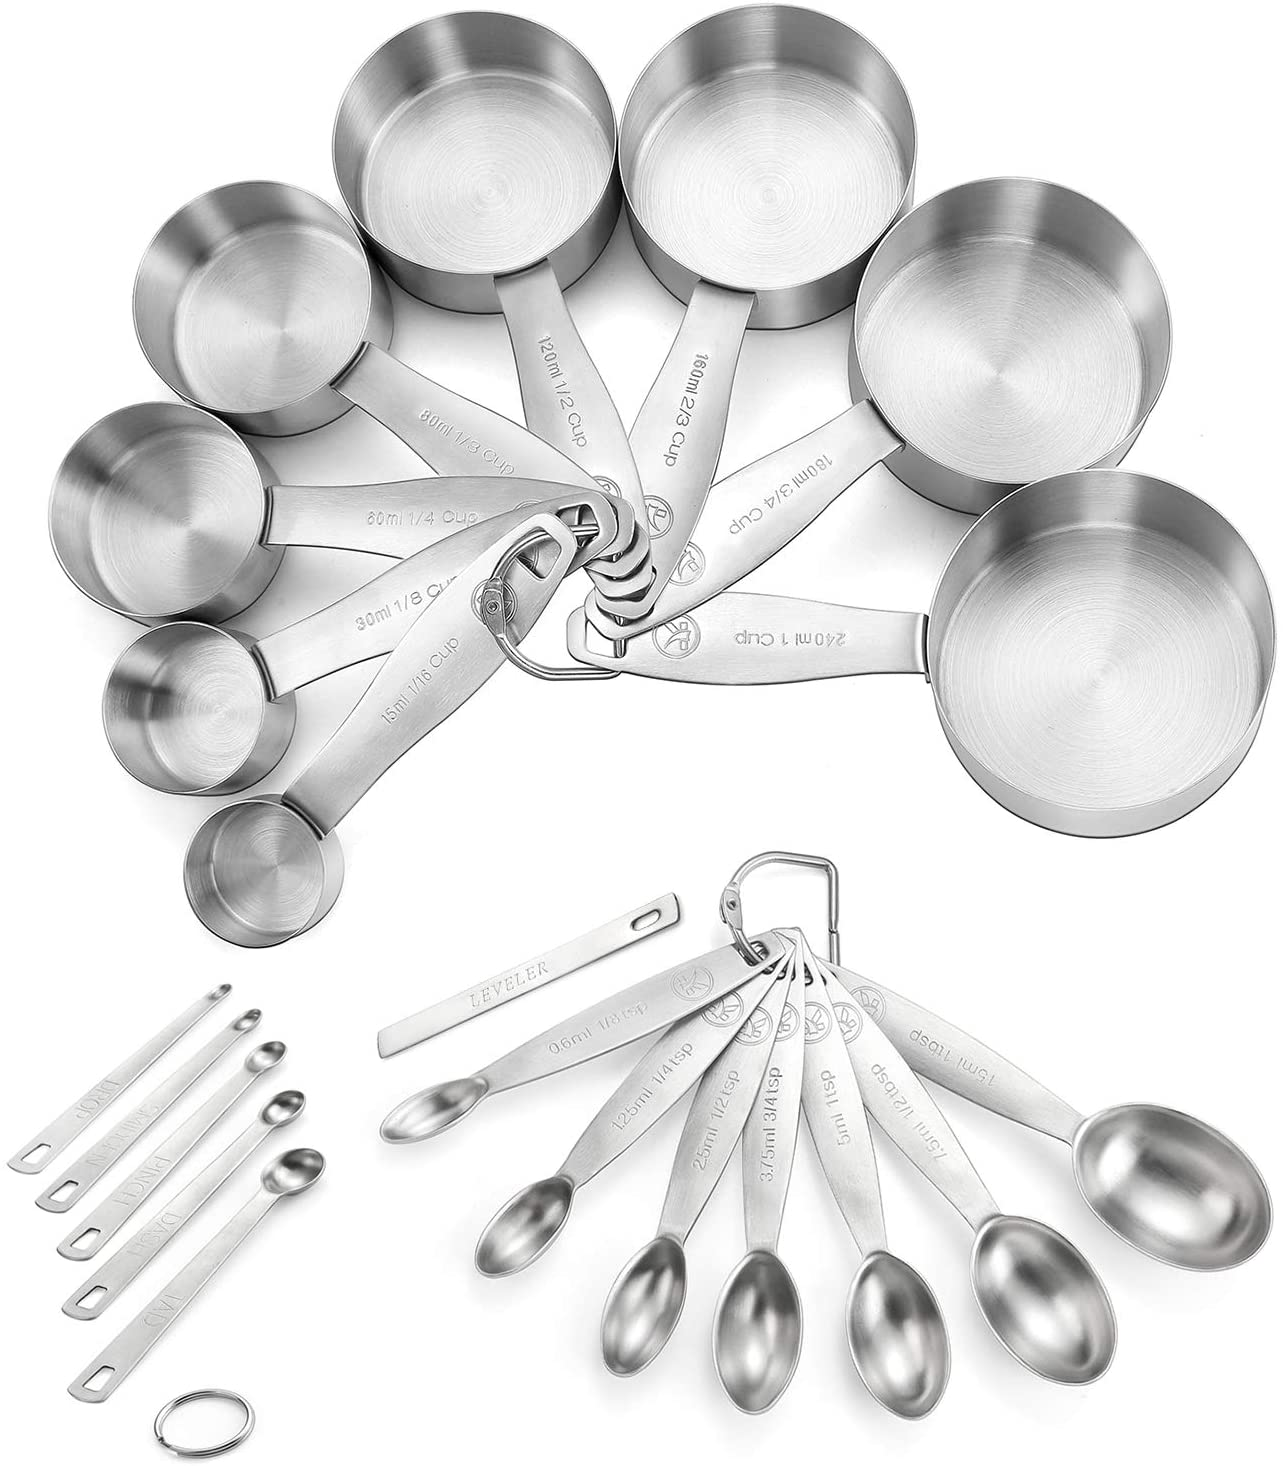 Measuring Cups and Spoons Set of 21 8 Direct Cheap sale stock discount 18 Piece in Stee Stainless